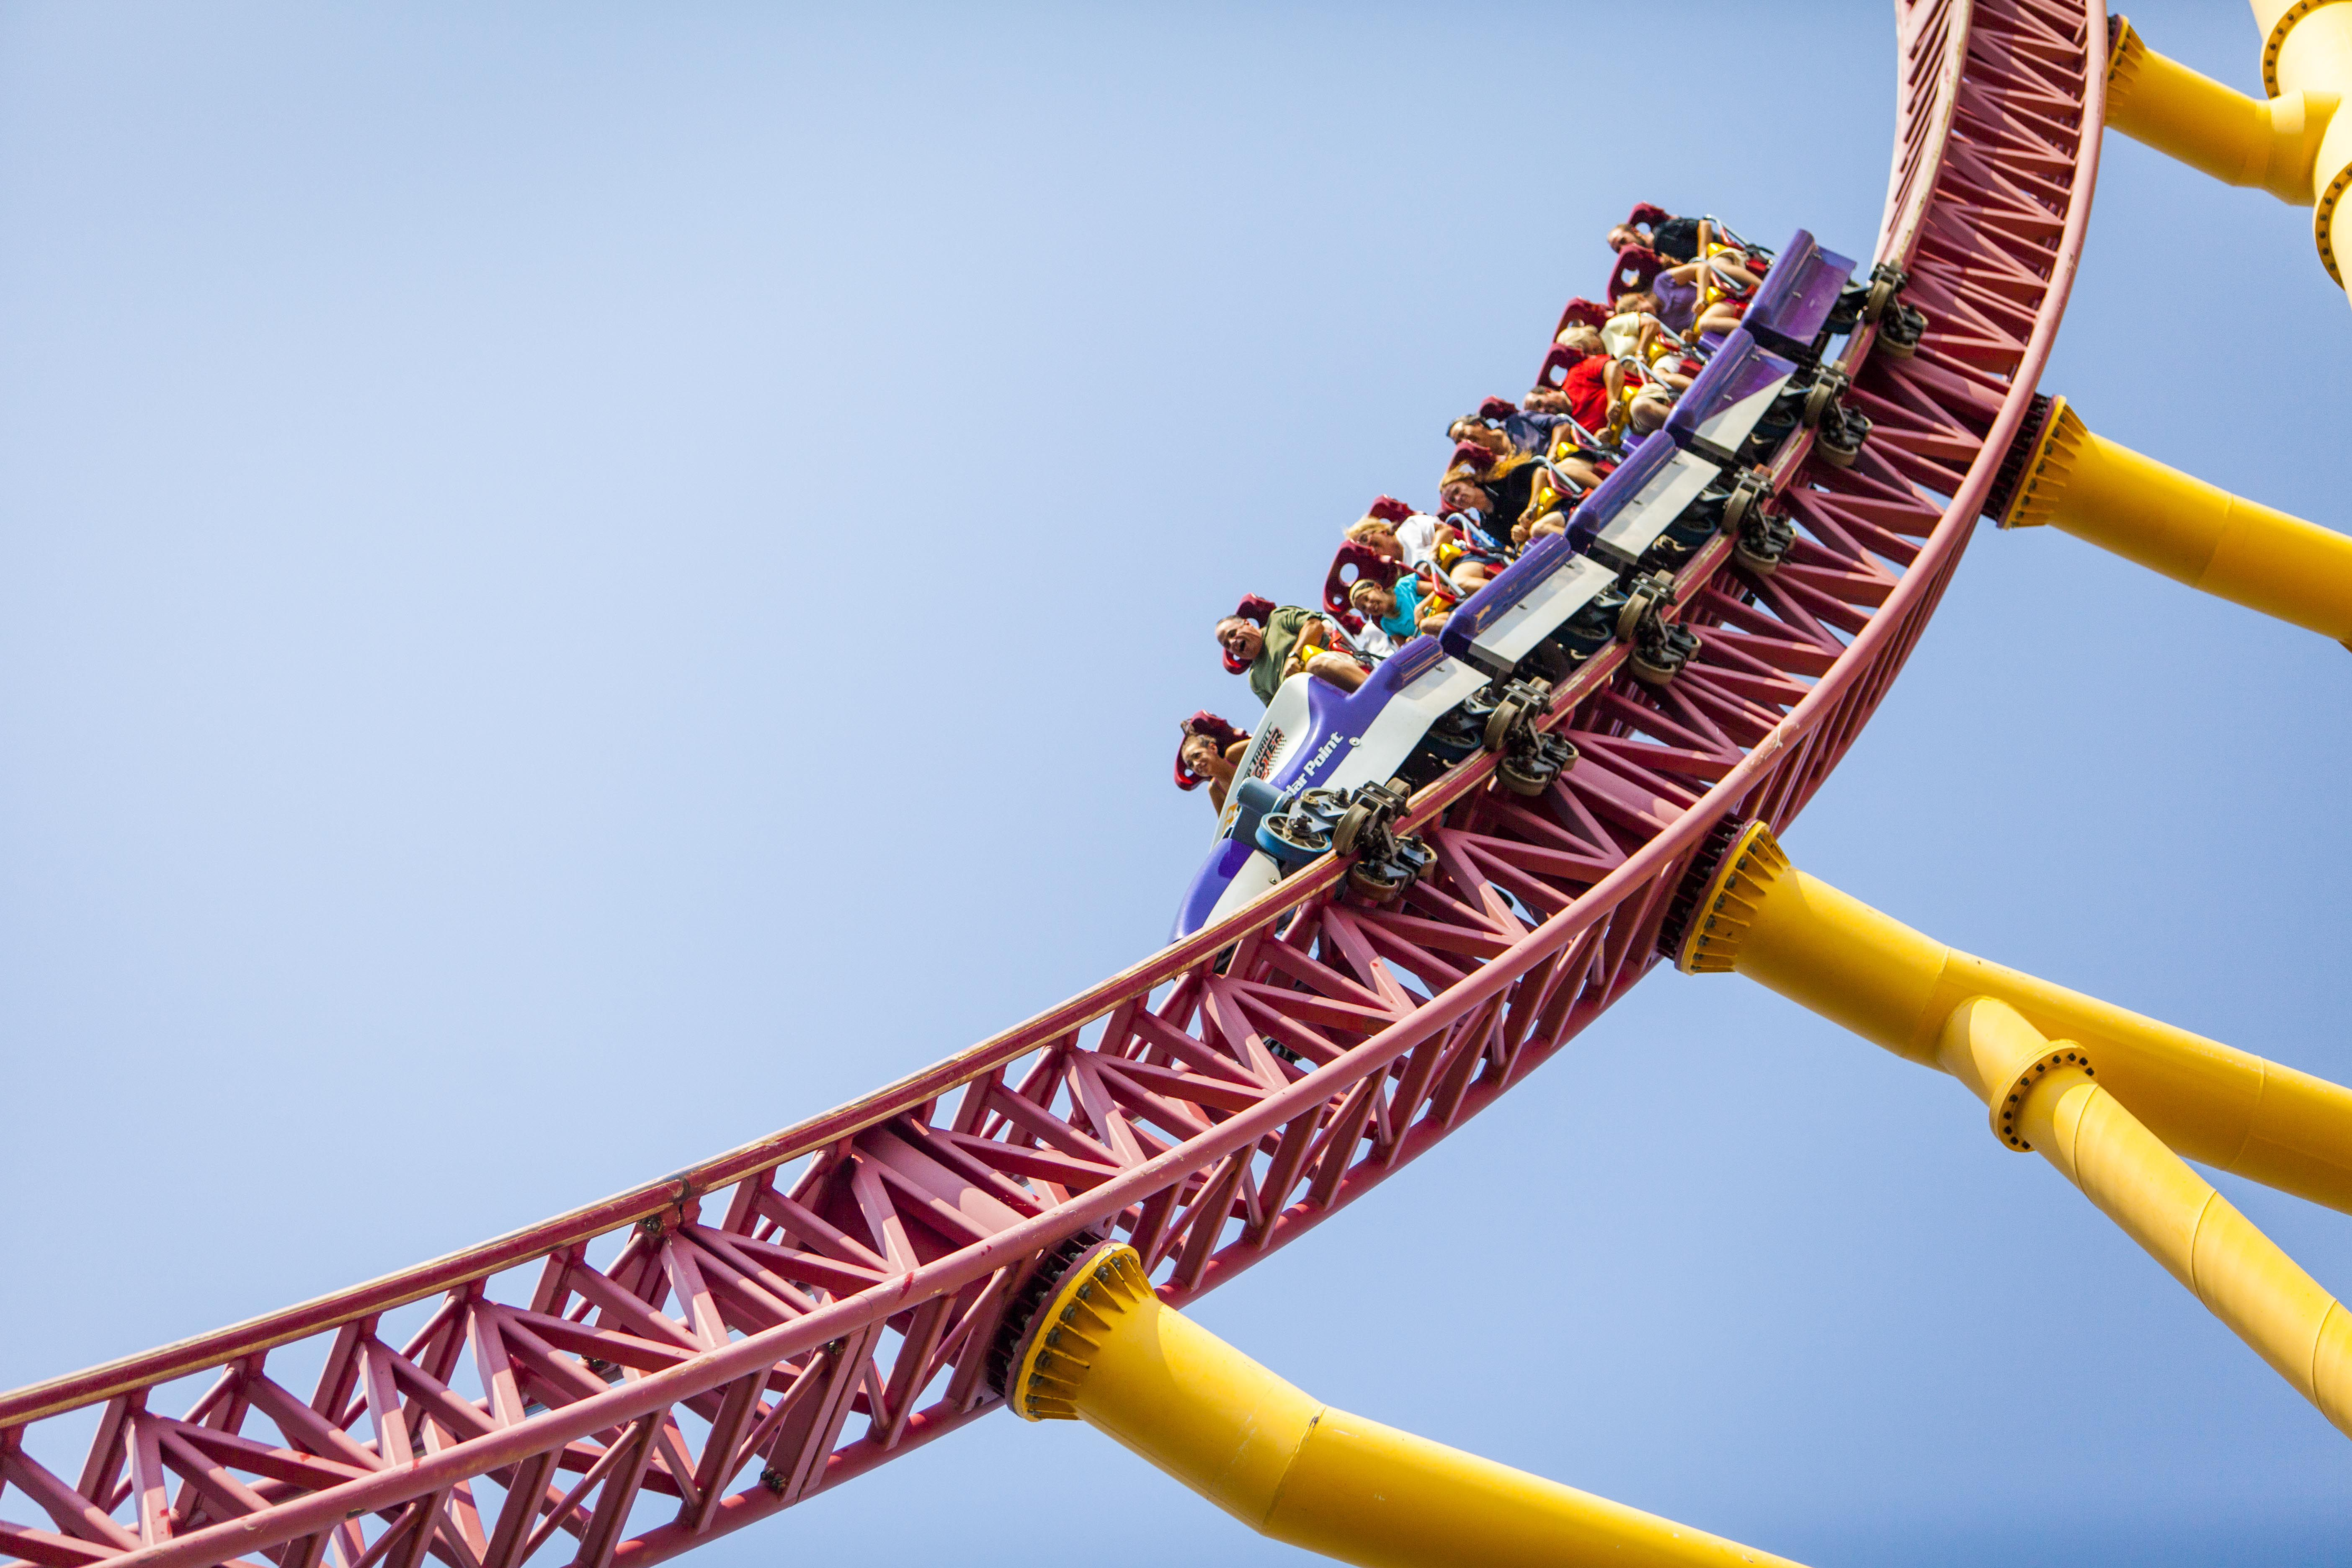 The World's 10 Fastest Roller Coasters